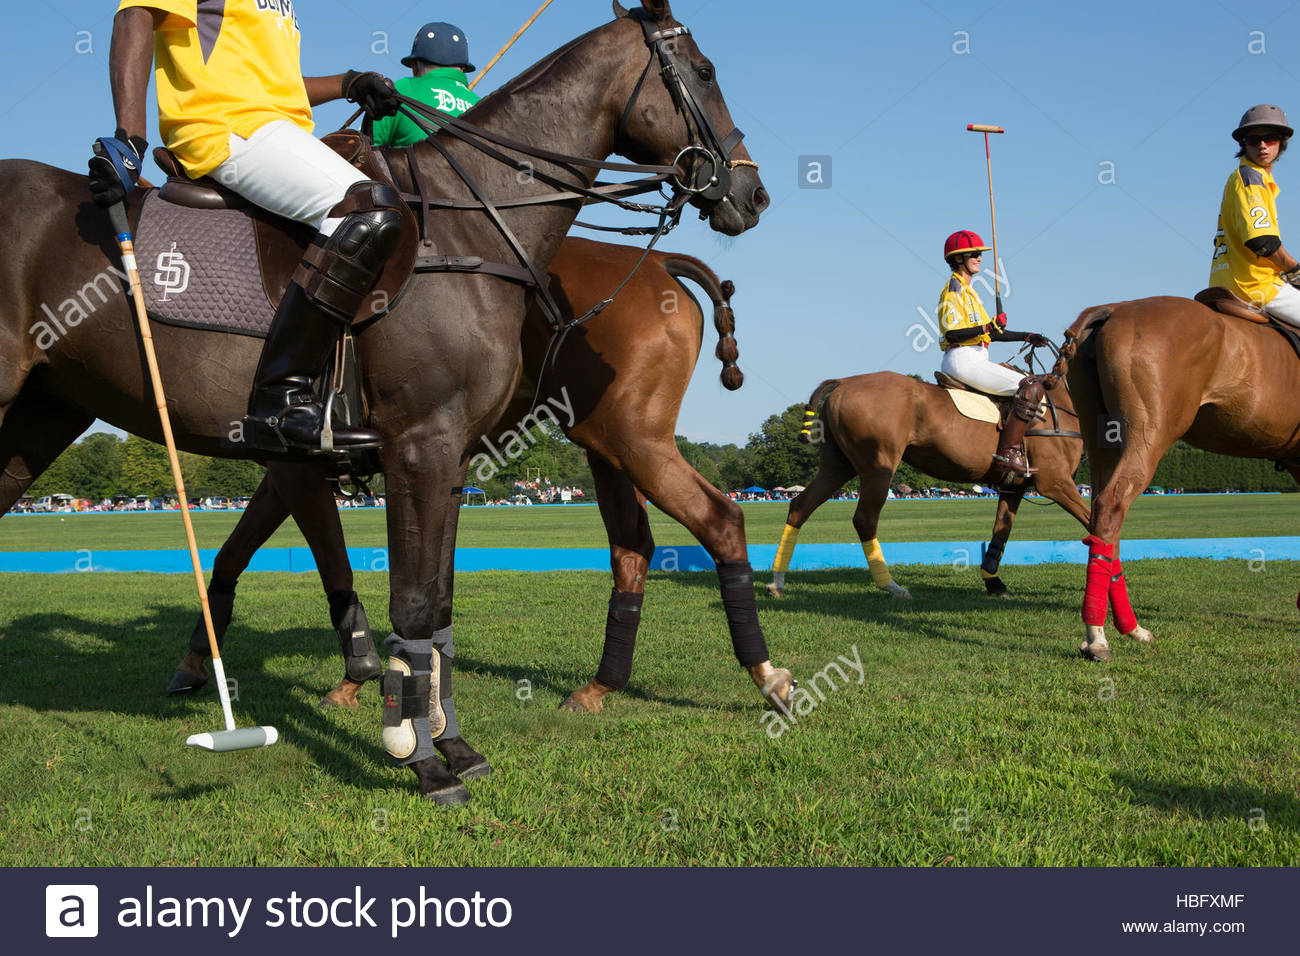 Players and ponies of Saratoga's polo club in Saratoga Springs, New York. - Stock Image